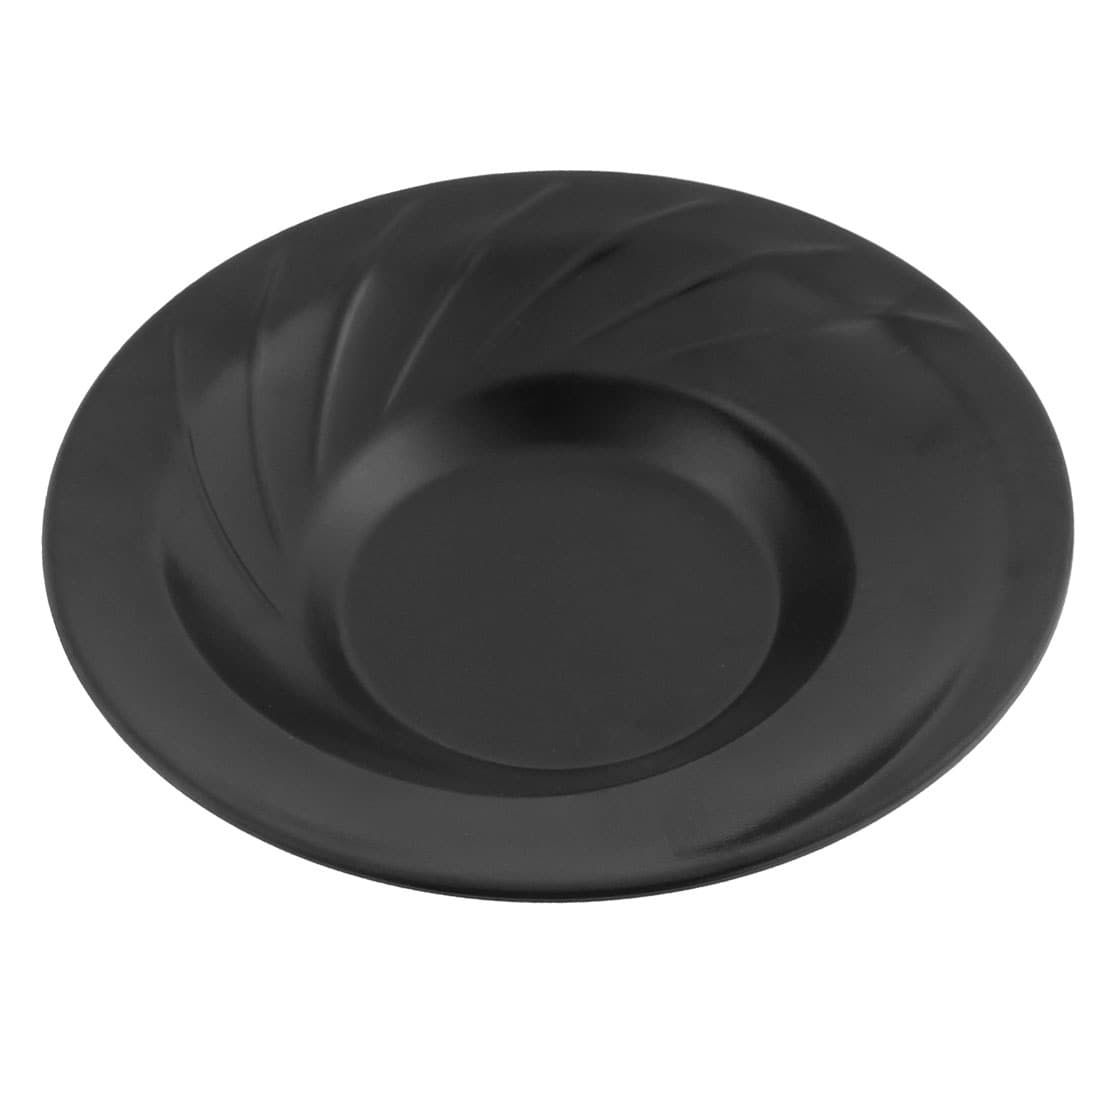 Products  sc 1 st  Pinterest & Unique Bargains Restaurant Plastic Round Shaped Food Soup Dish Plate ...